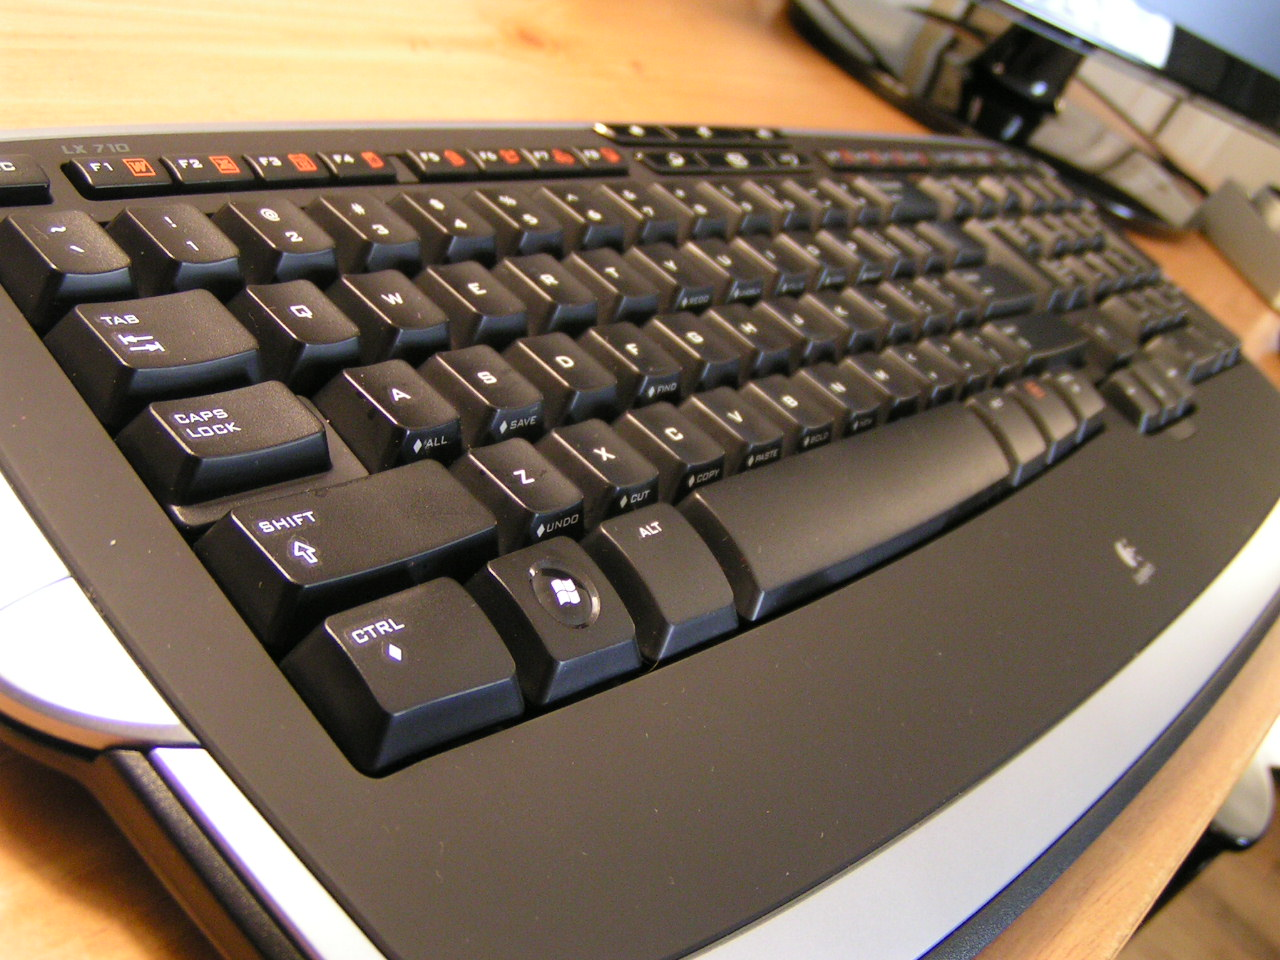 Overall of the LX 710 keyboard.